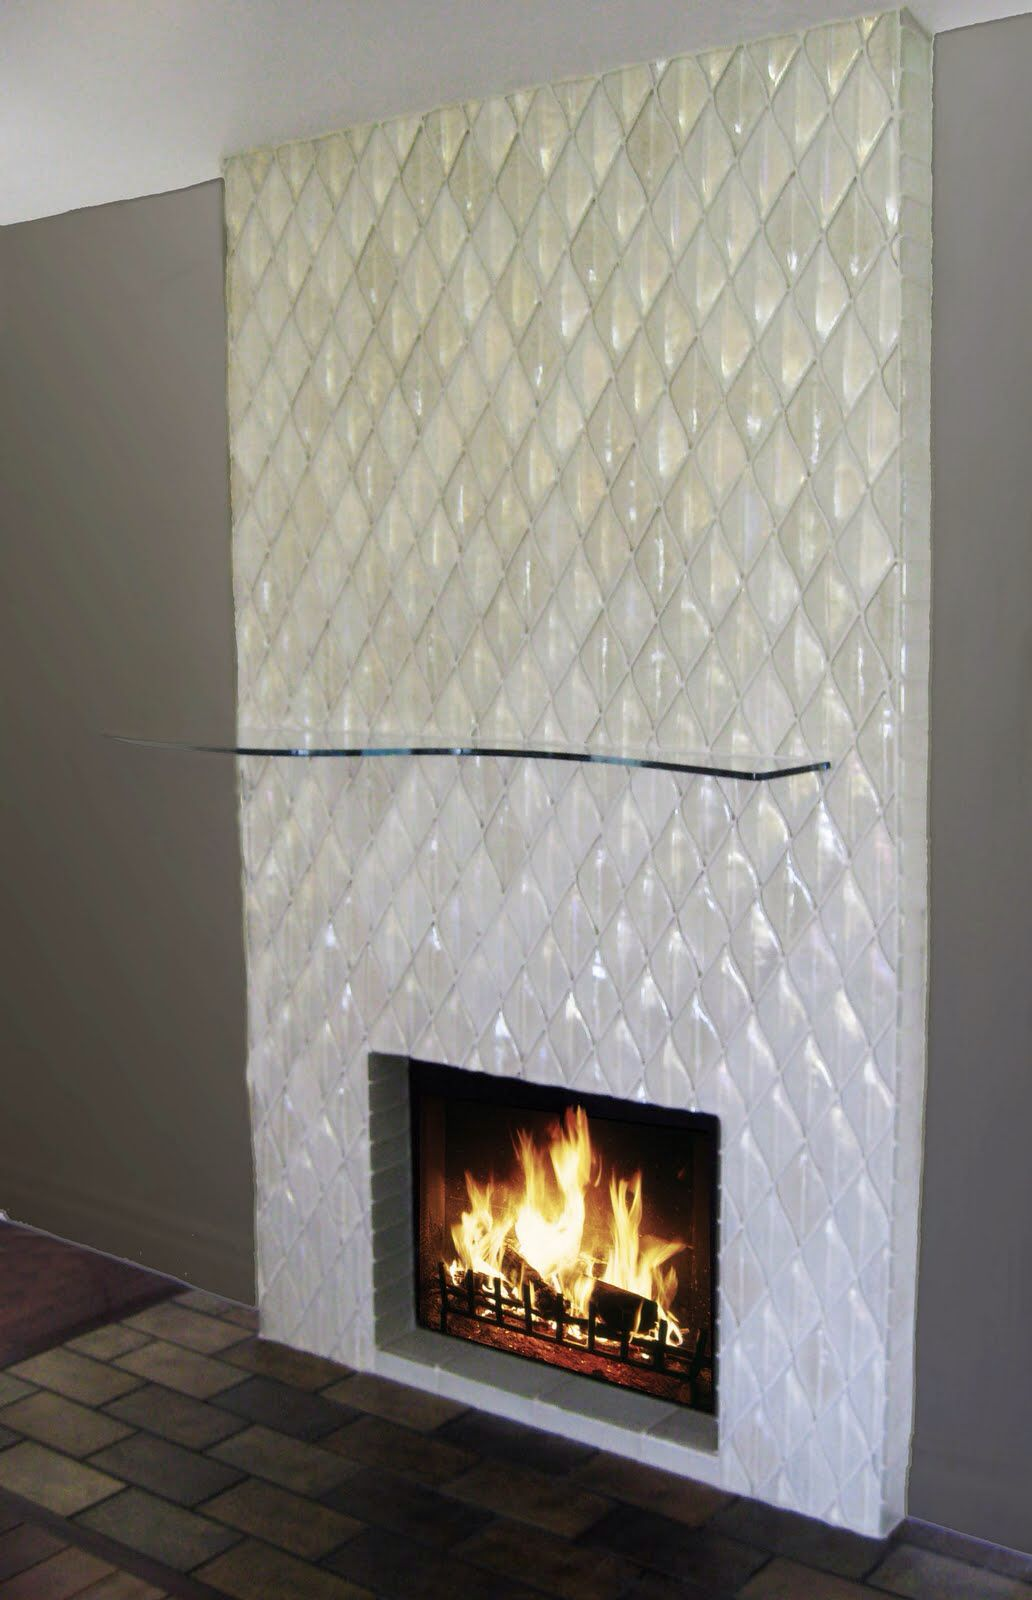 Image from Fireplace design ideas